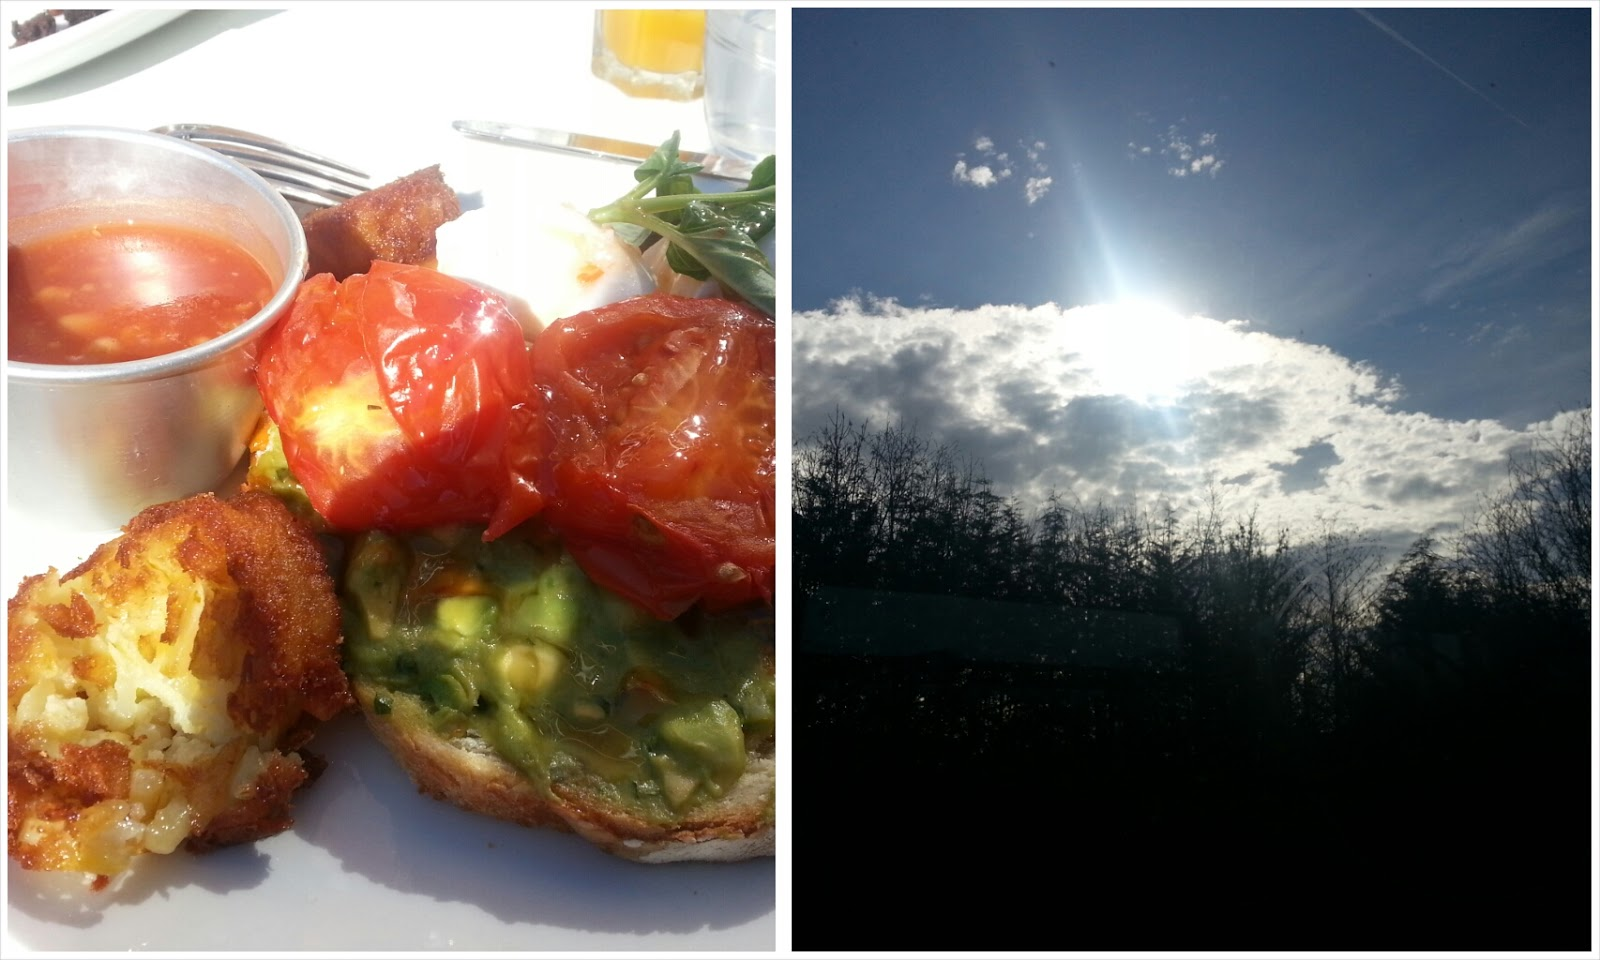 Reasons to be cheerful - breakfast at Bills and sunshine